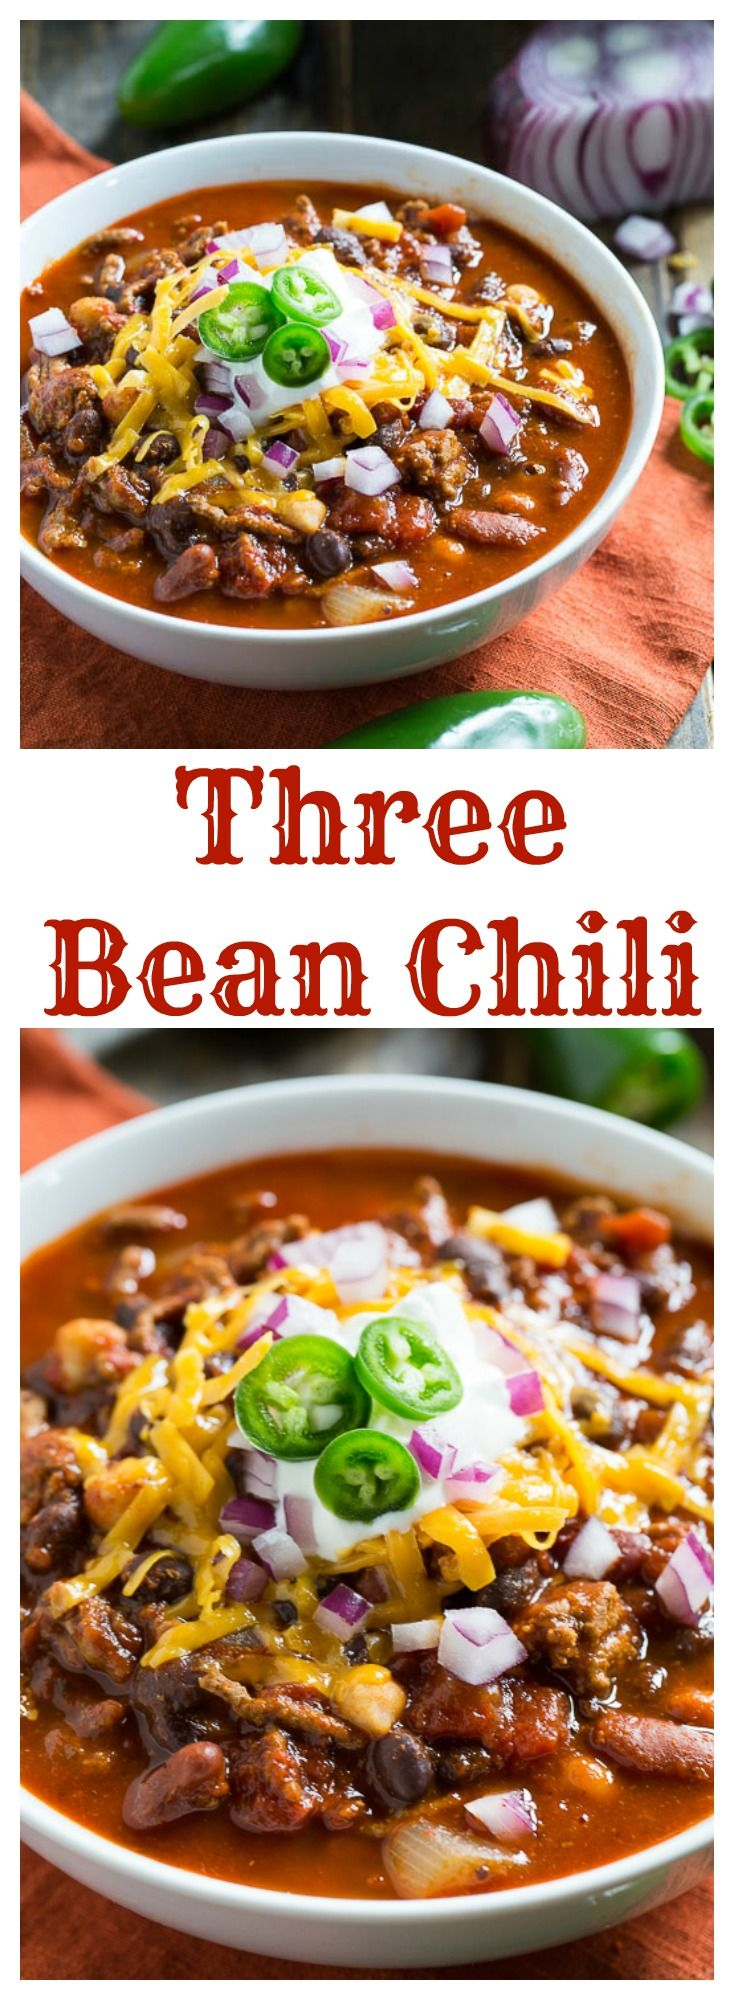 Three Bean Chili | Bean Chili, Beans and Chilis